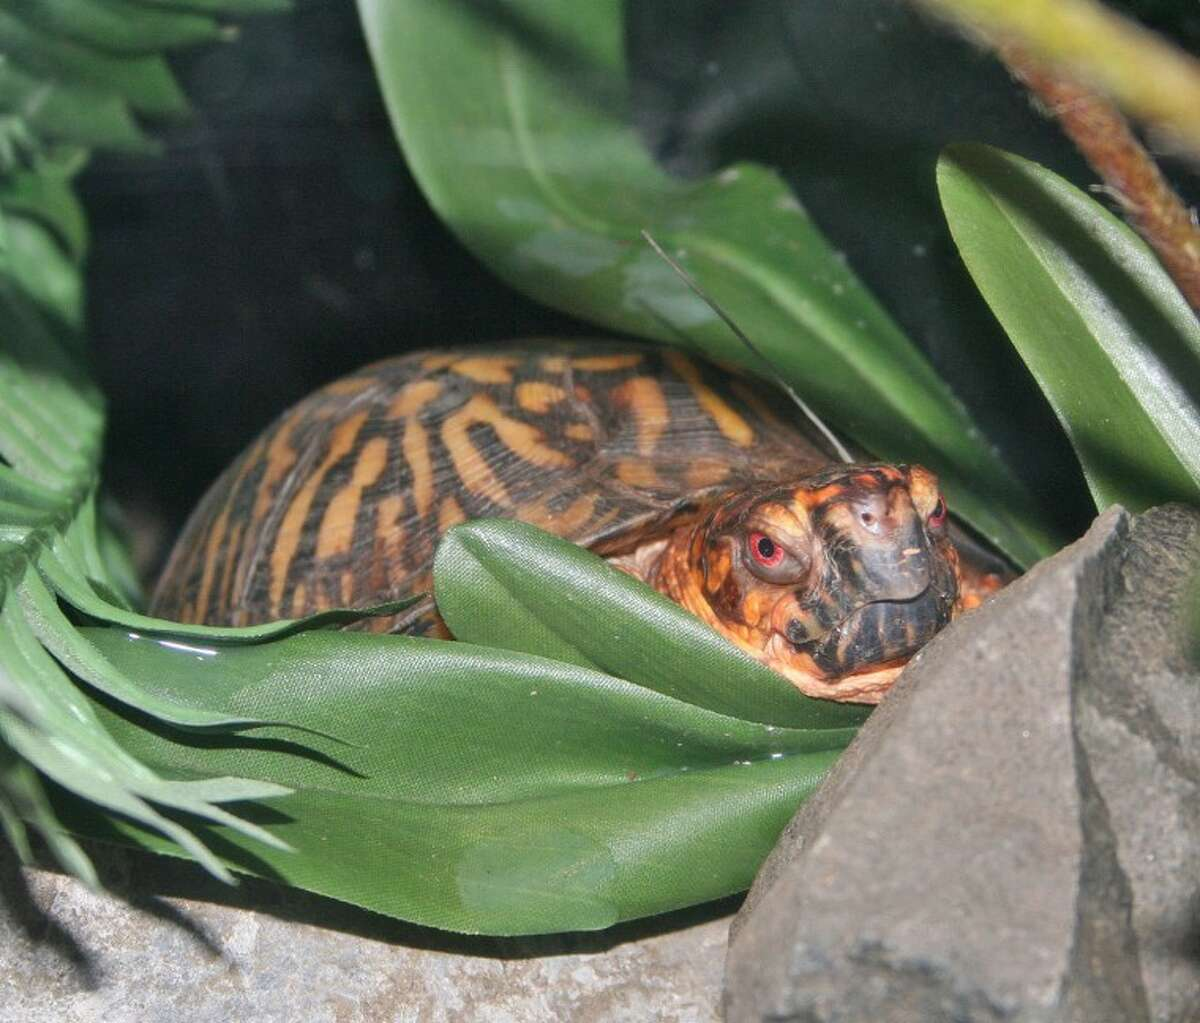 After the world doesn't end on Dec. 21, come out of your hiding place (like this box turtle) and bring the kids for free to The Maritime Aquarium at Norwalk. On Sat., Dec. 22, the Aquarium's special